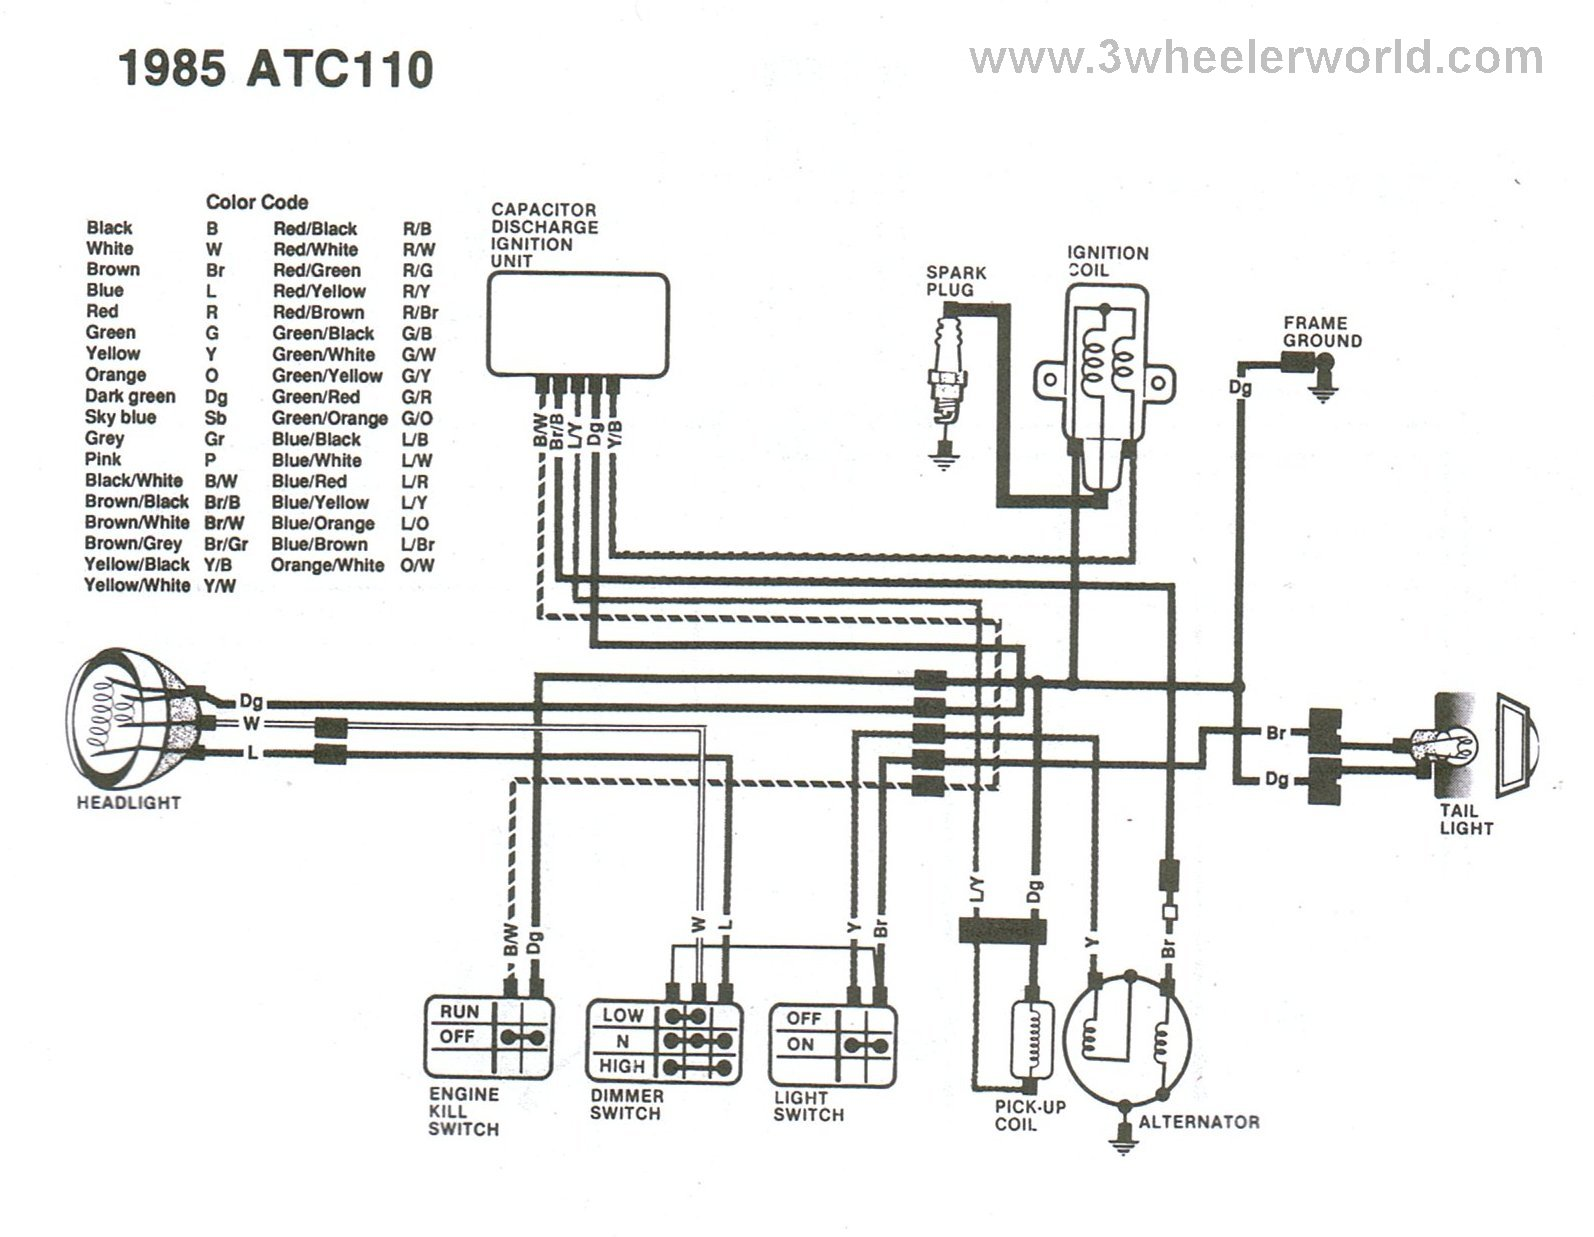 484770347364396878 together with 2m2p4 1964 Chevelle 350cu In moreover 93 Tercel Wiring Diagram furthermore Mcpherson Struts And Strut D er further ST1300 c. on 2012 honda civic wiring diagram pdf